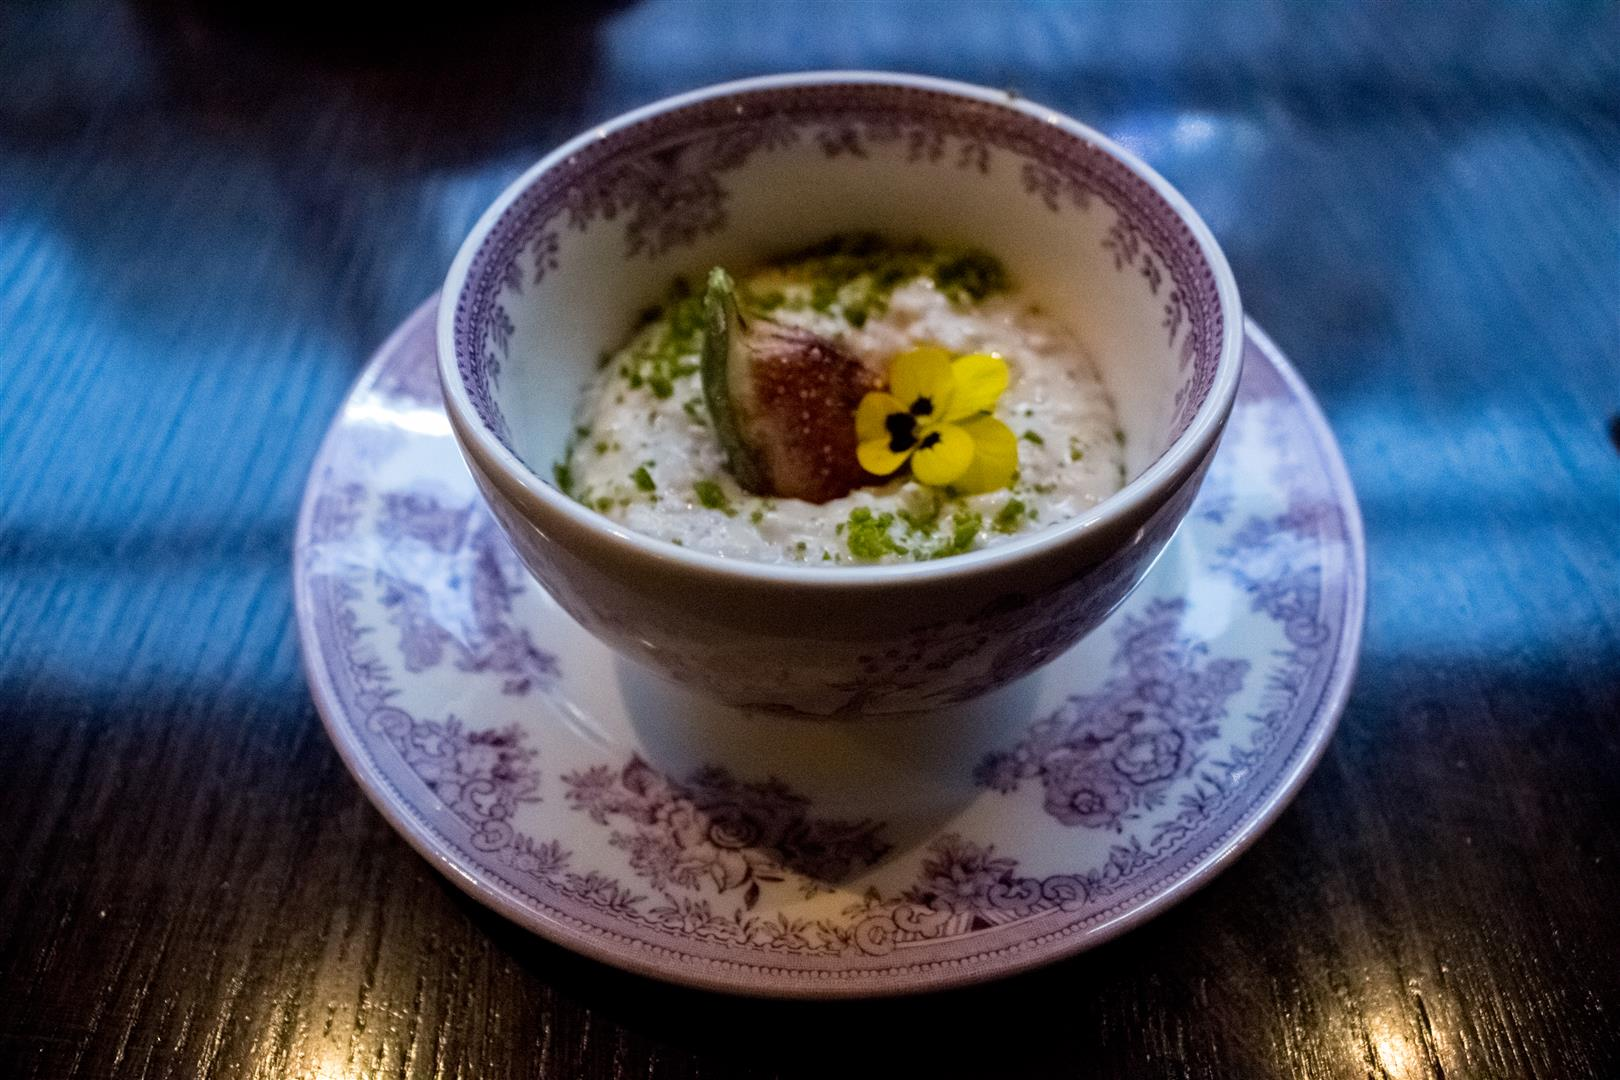 The Rice Pudding - Gymkhana easily puts all other rice puddings to shame!